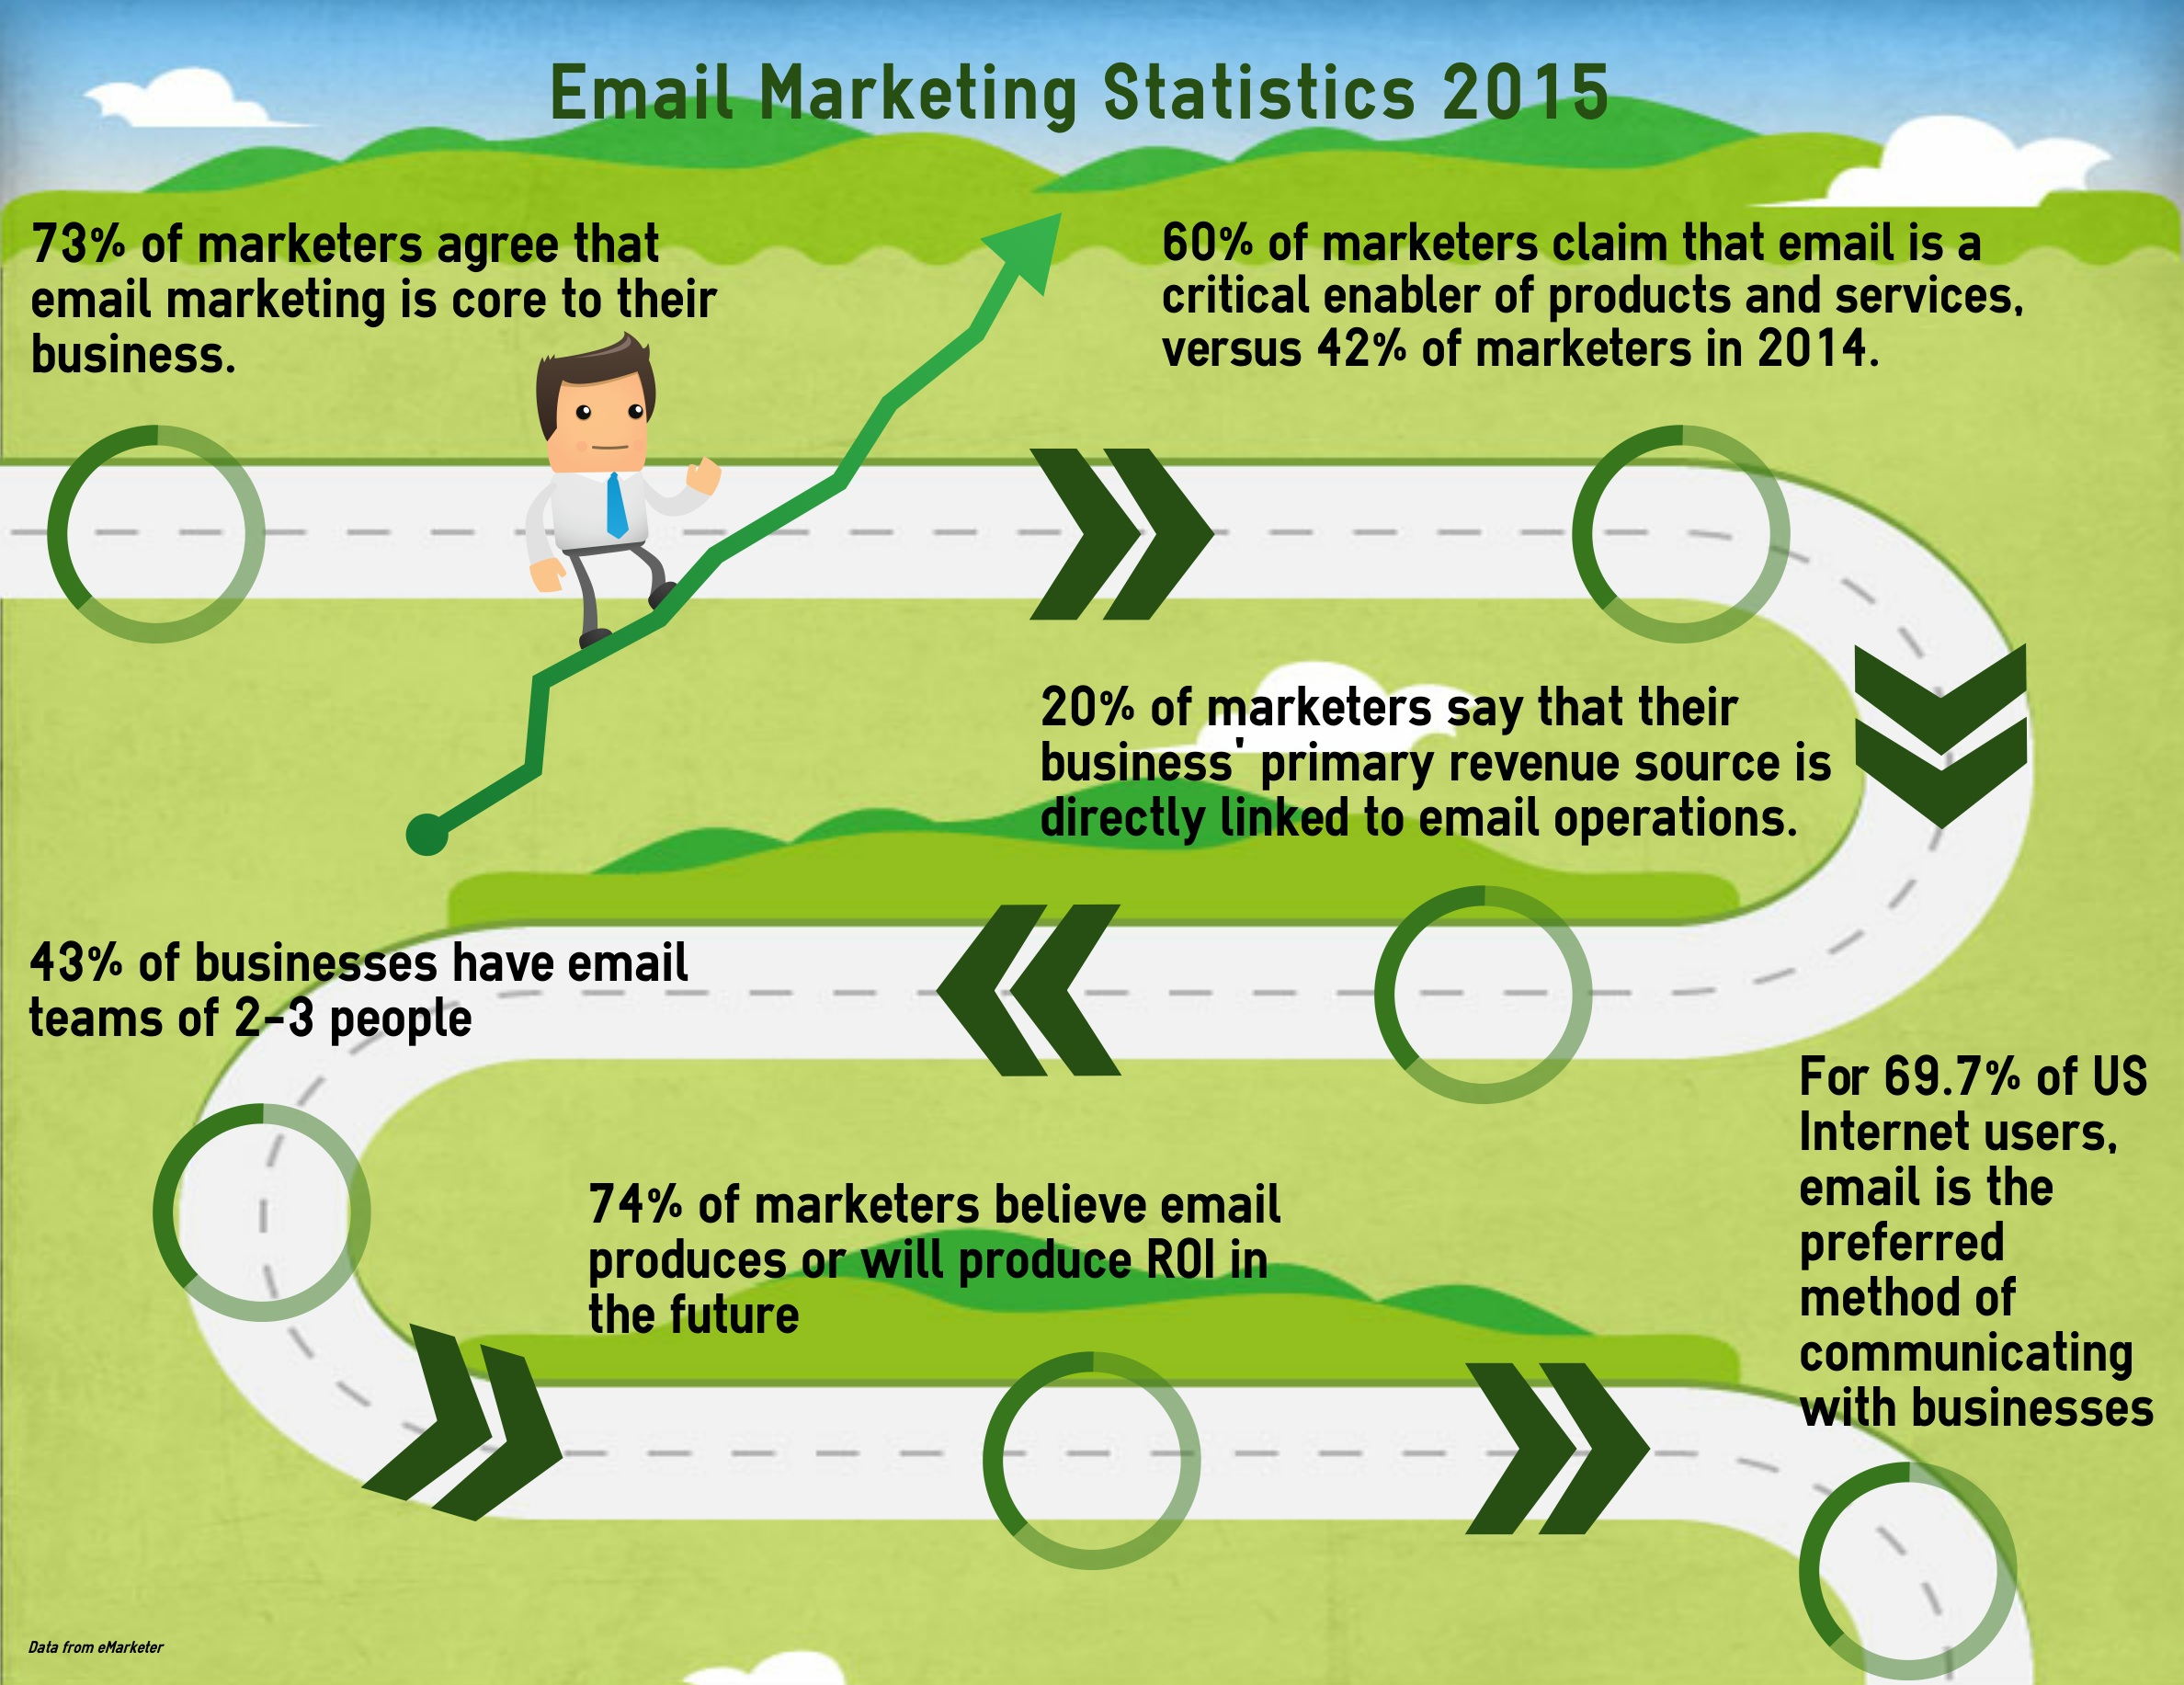 5 Email Marketing tips for a successful campaign - Stefano Pucello ...